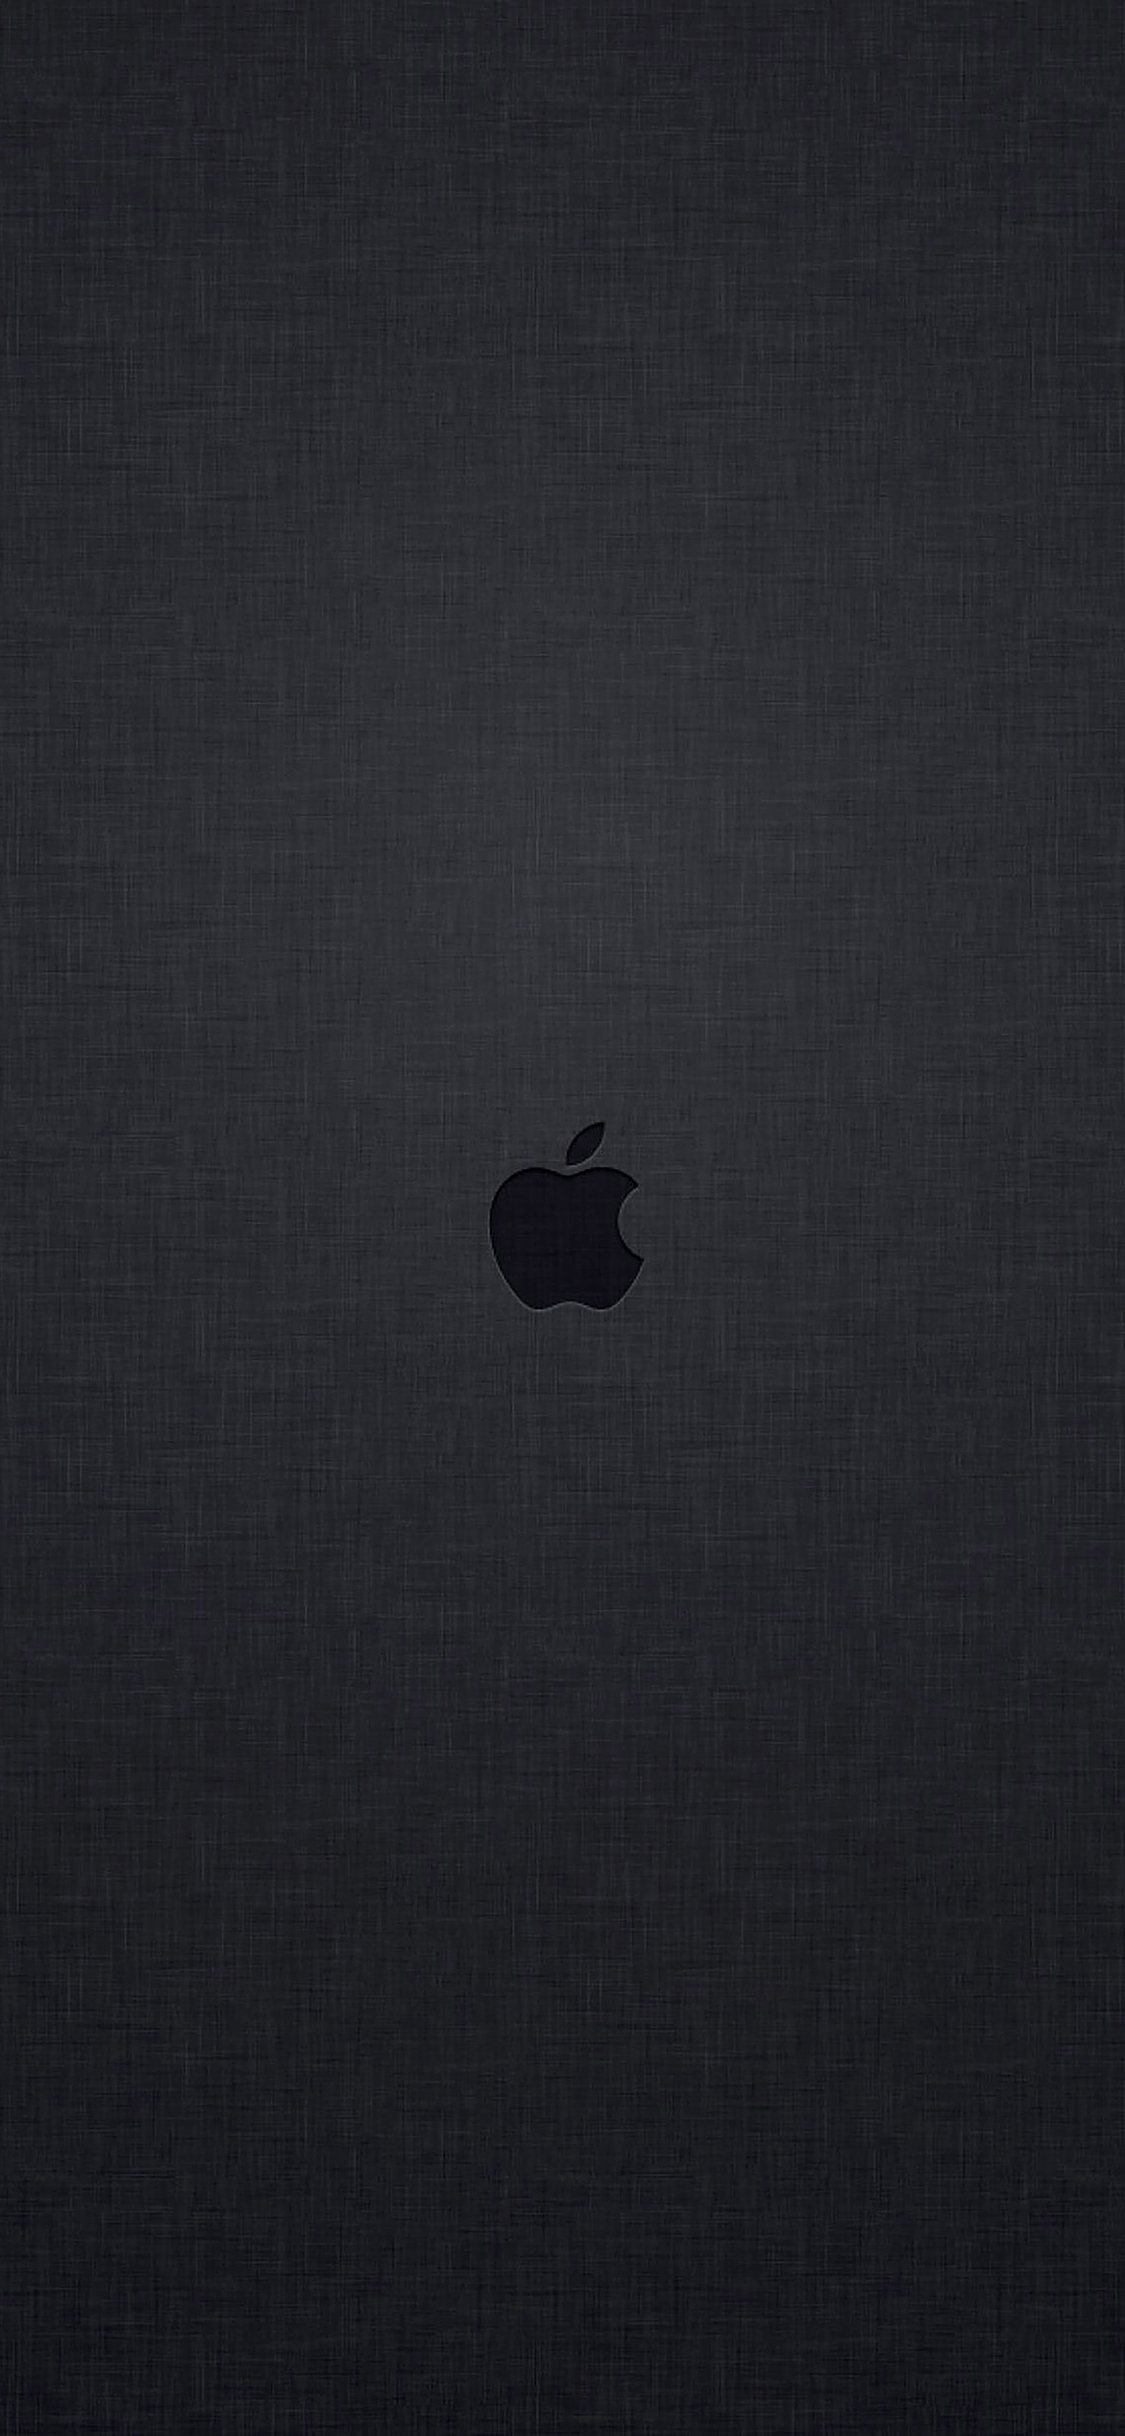 ab28-wallpaper-tiny-apple-logo-dark-wallpaper